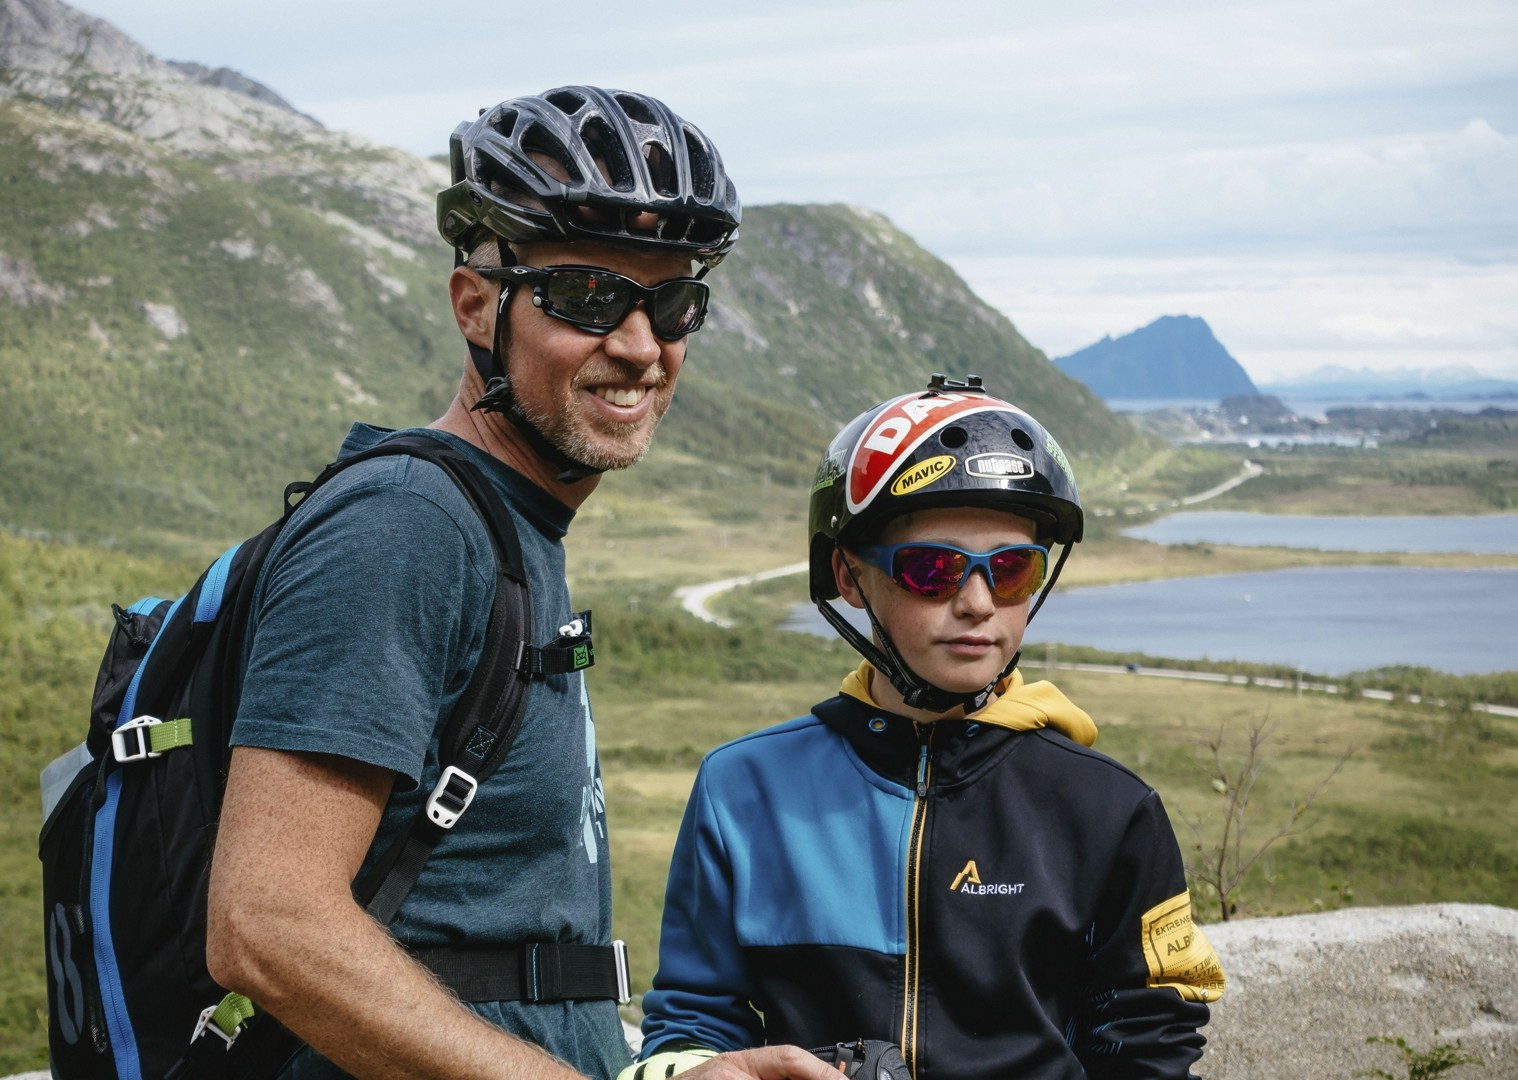 lofoten-islands-norway-4.jpg - Norway - Lofoten Islands - Biking with Vikings - Self-Guided Family Cycling Holiday - Family Cycling